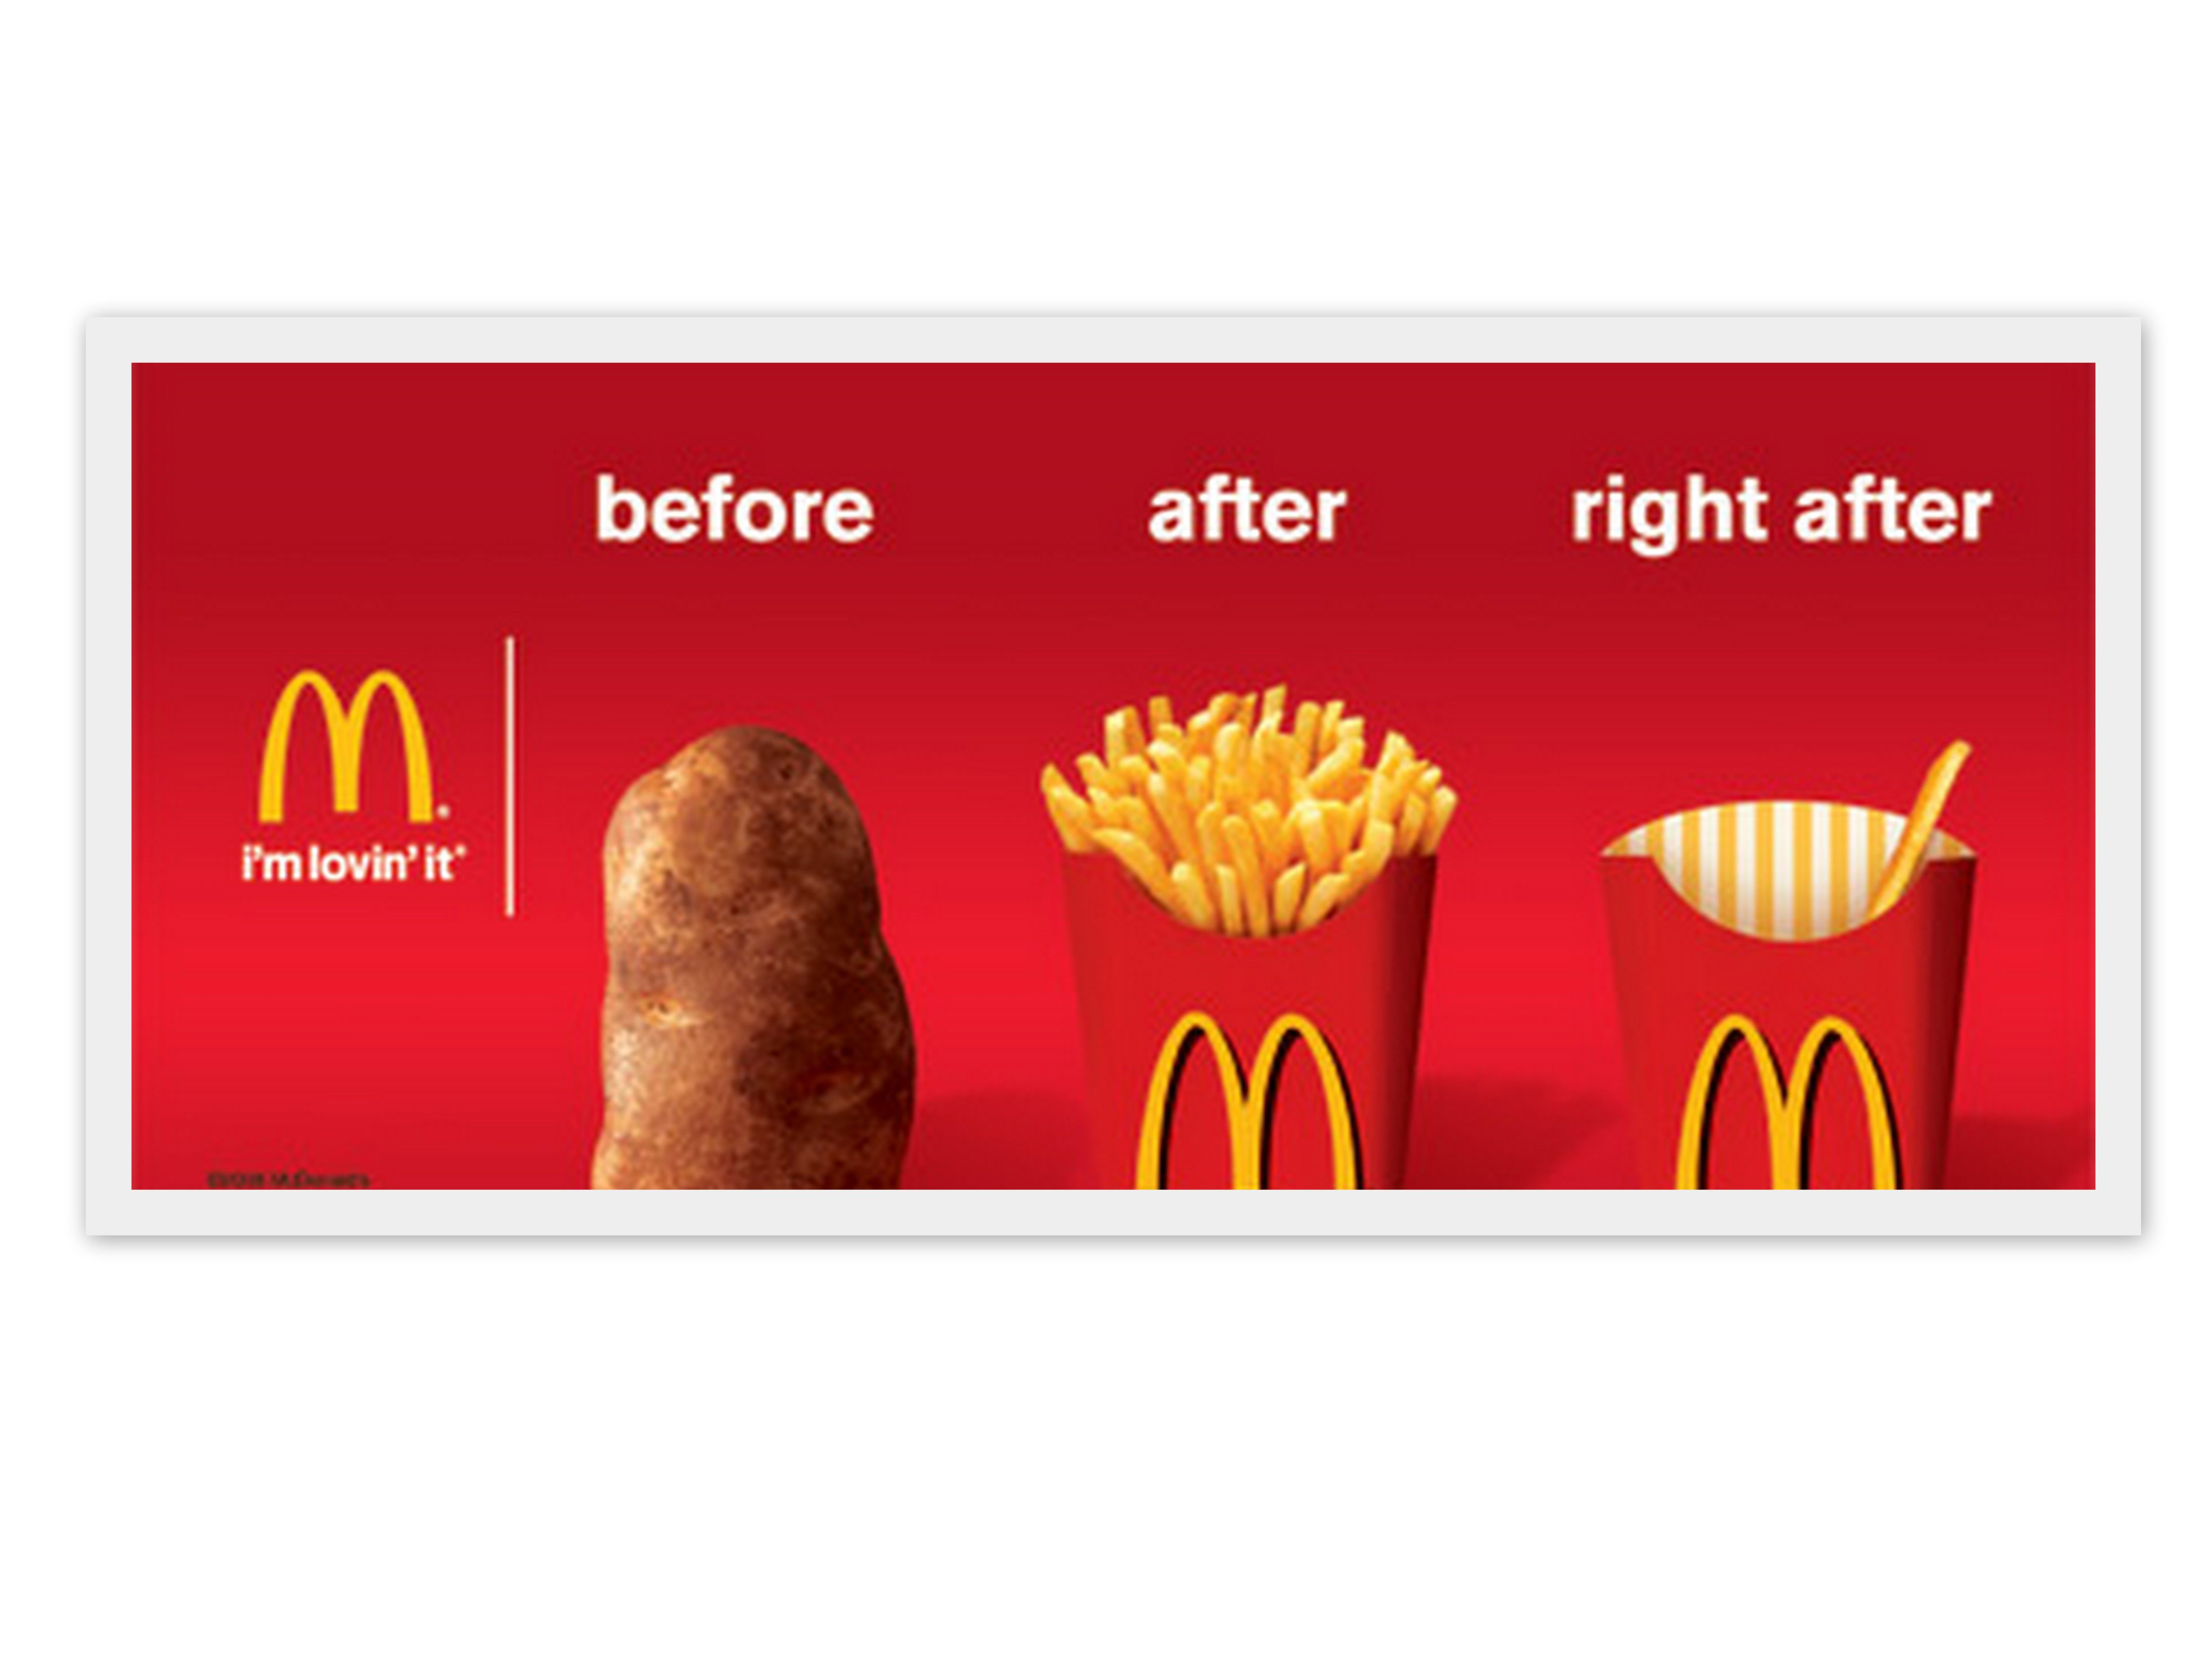 organization development of mcdonalds With flexible schedules, benefits and workforce training, mcdonald's has opportunities that can unlock your full potential and help turn a job into a career.